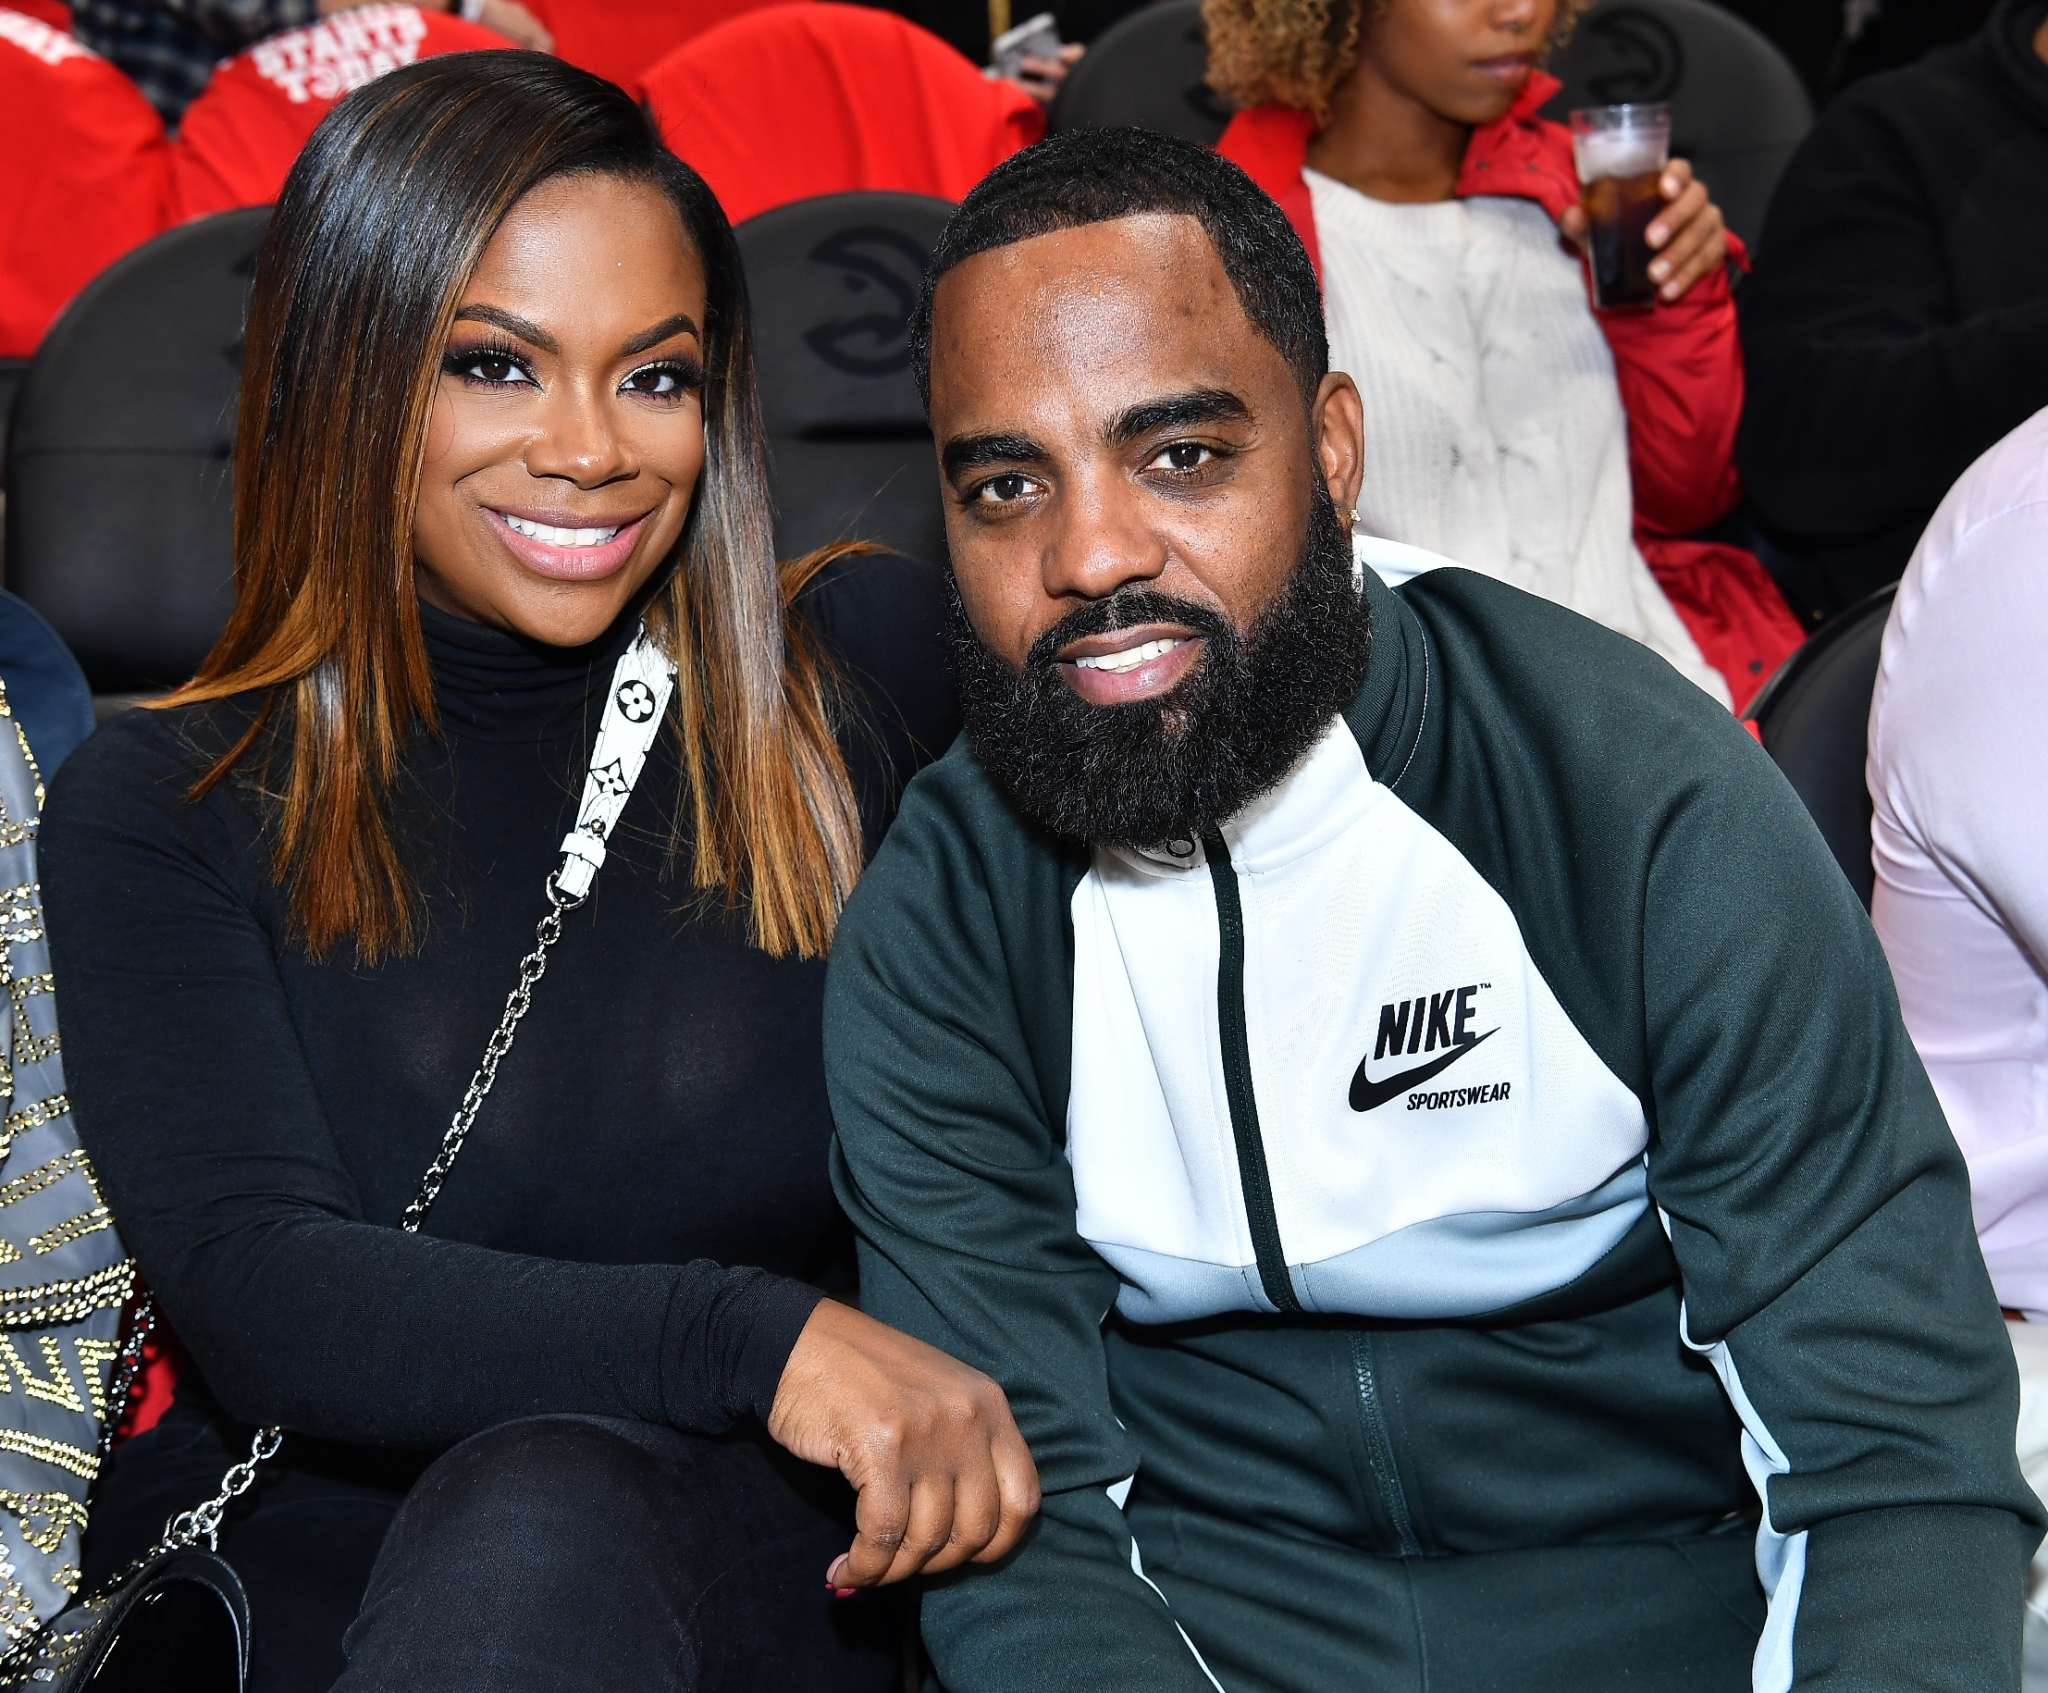 """kandi-burruss-fans-are-praising-her-relationship-with-todd-tucker-people-also-address-the-latest-rhoa-episode-and-kandis-apology-to-porsha-williams"""